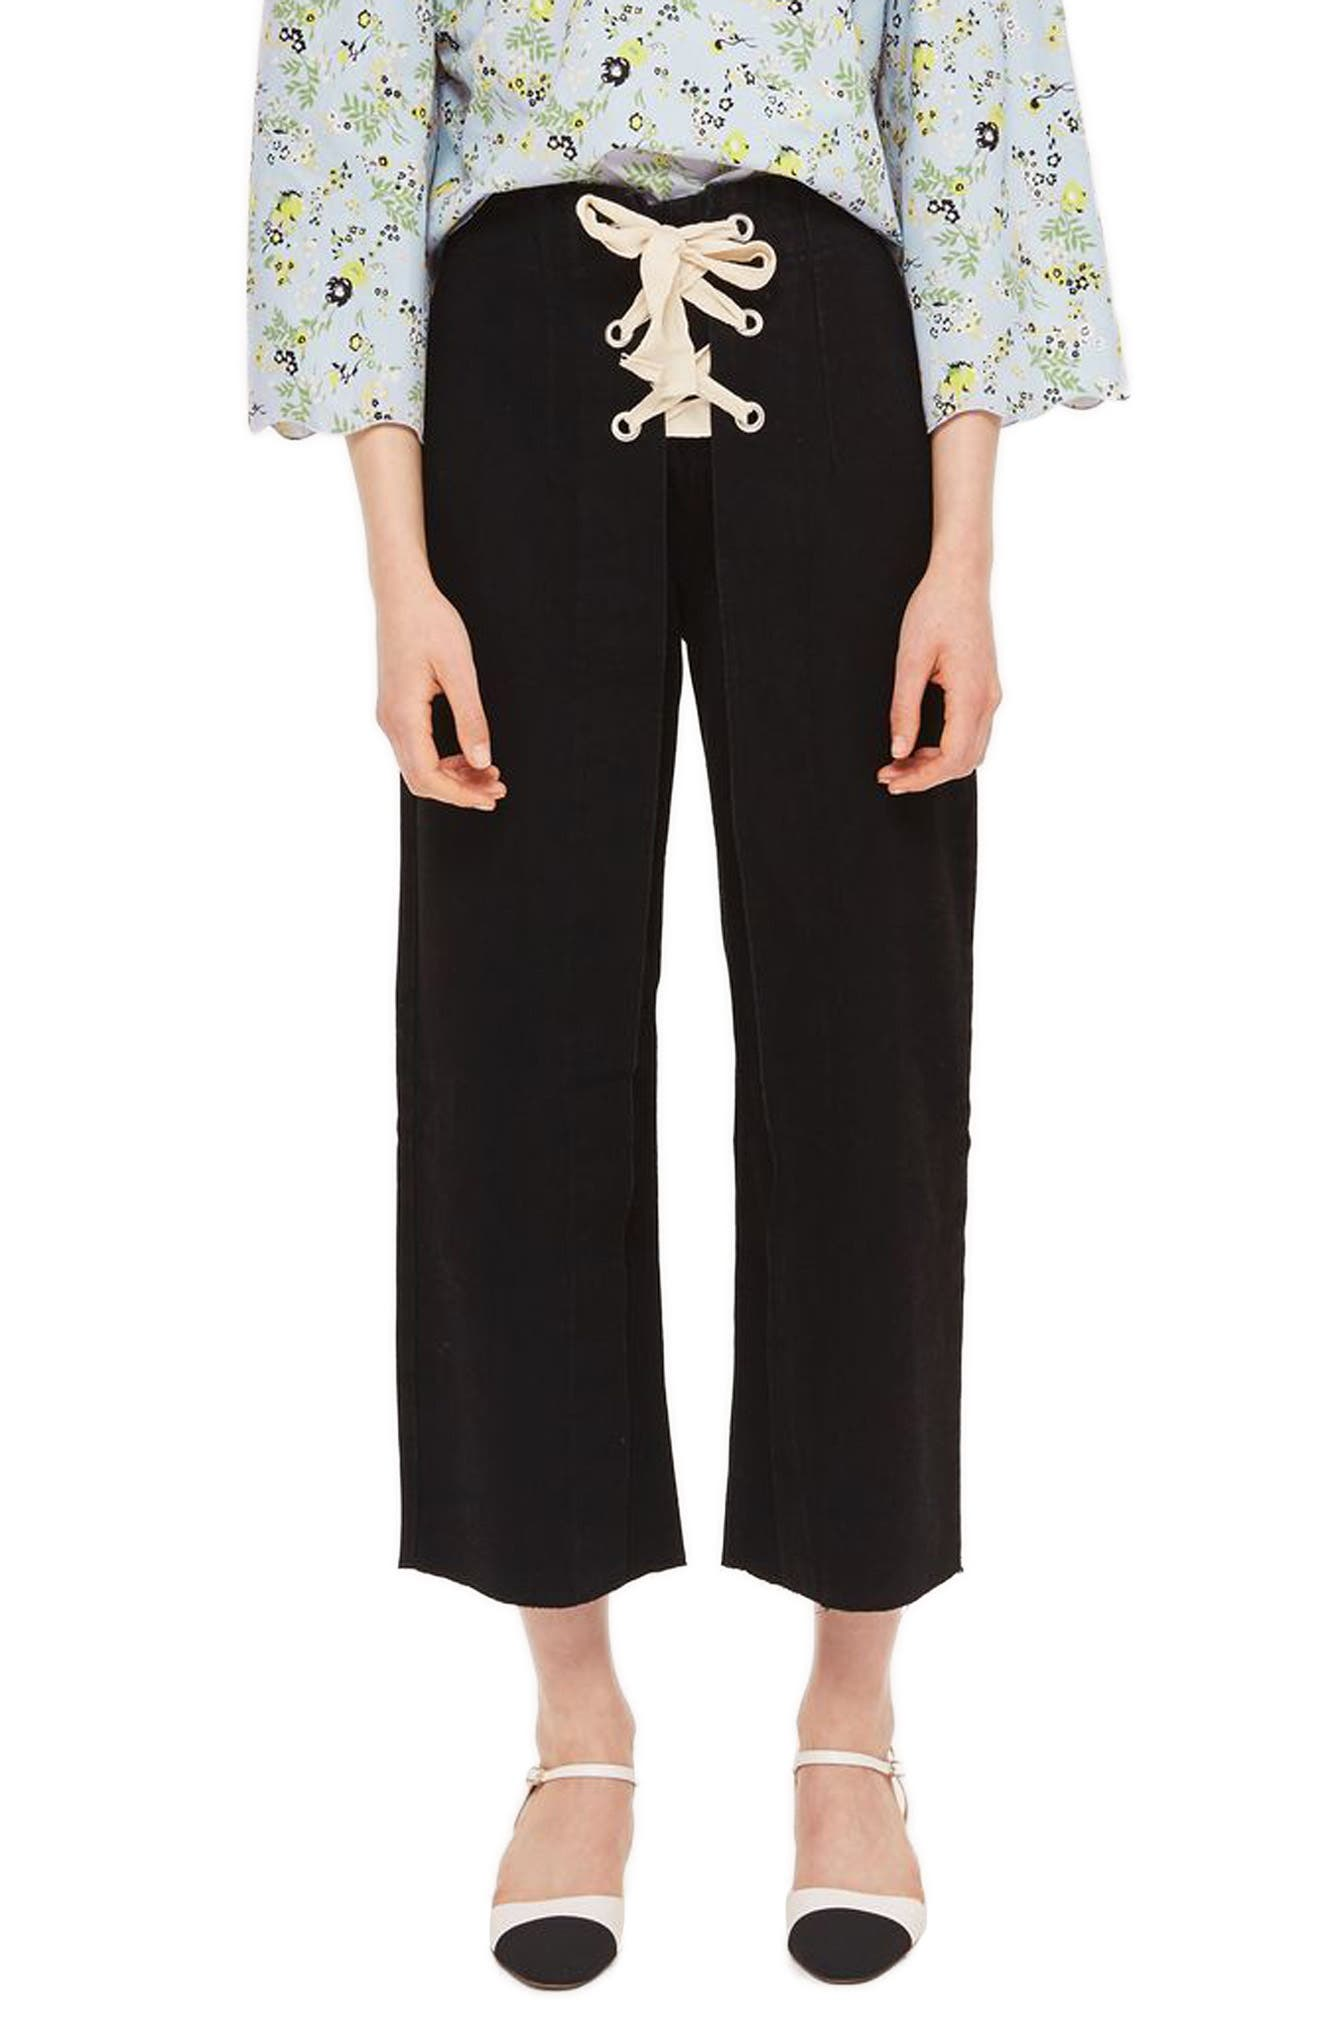 Topshop Lace-Up Wide Leg Crop Jeans